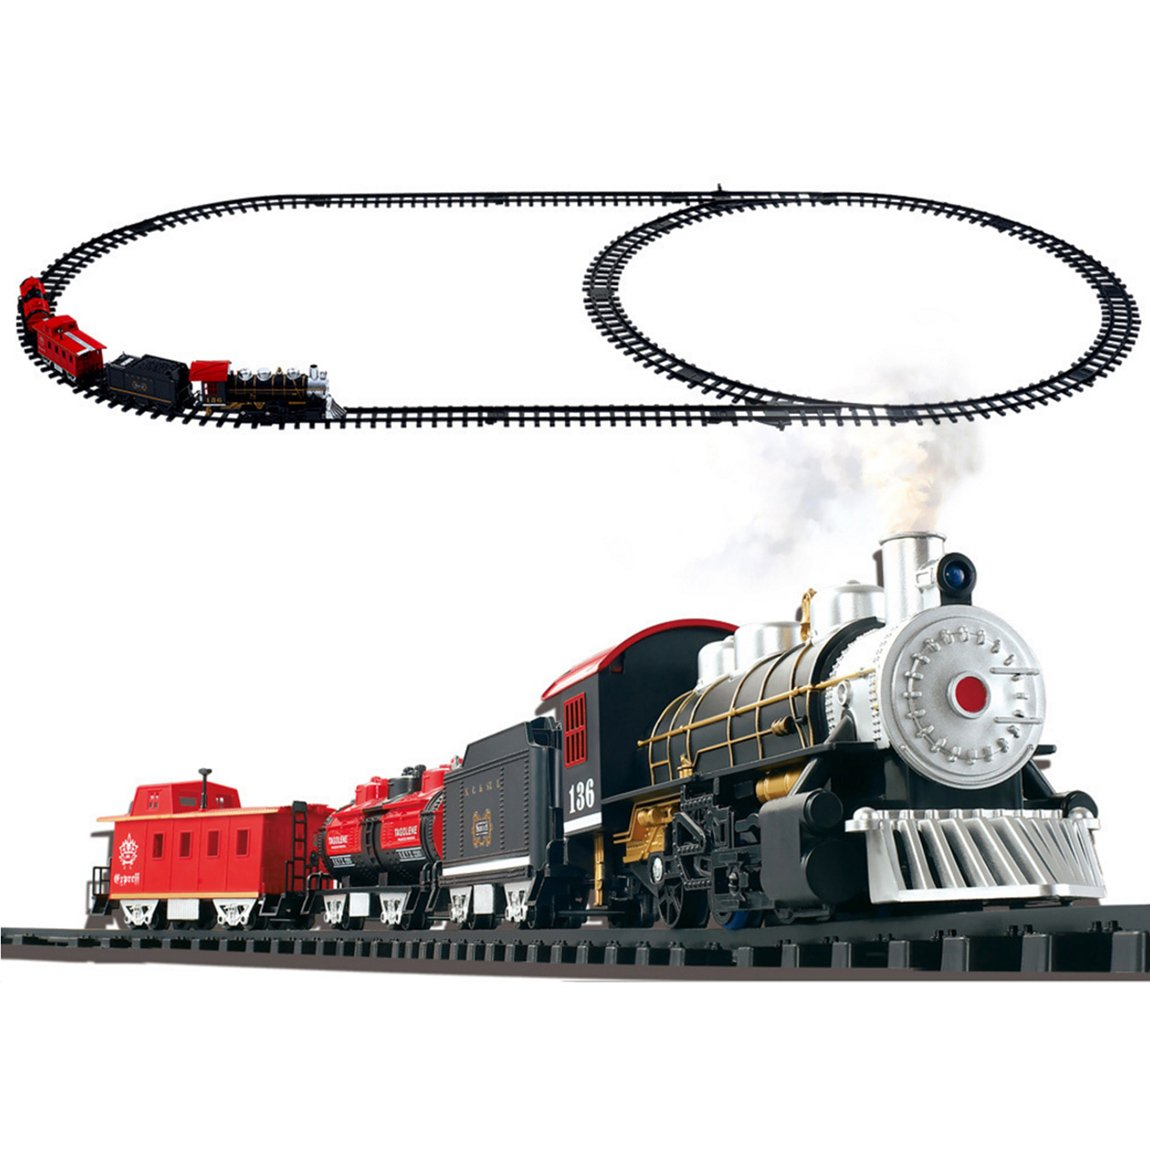 vrchil Big Train Set Toy for Boys, Kids Classical Train with Steam Smoking Simulation Sound Play Train, Best Gift for Children